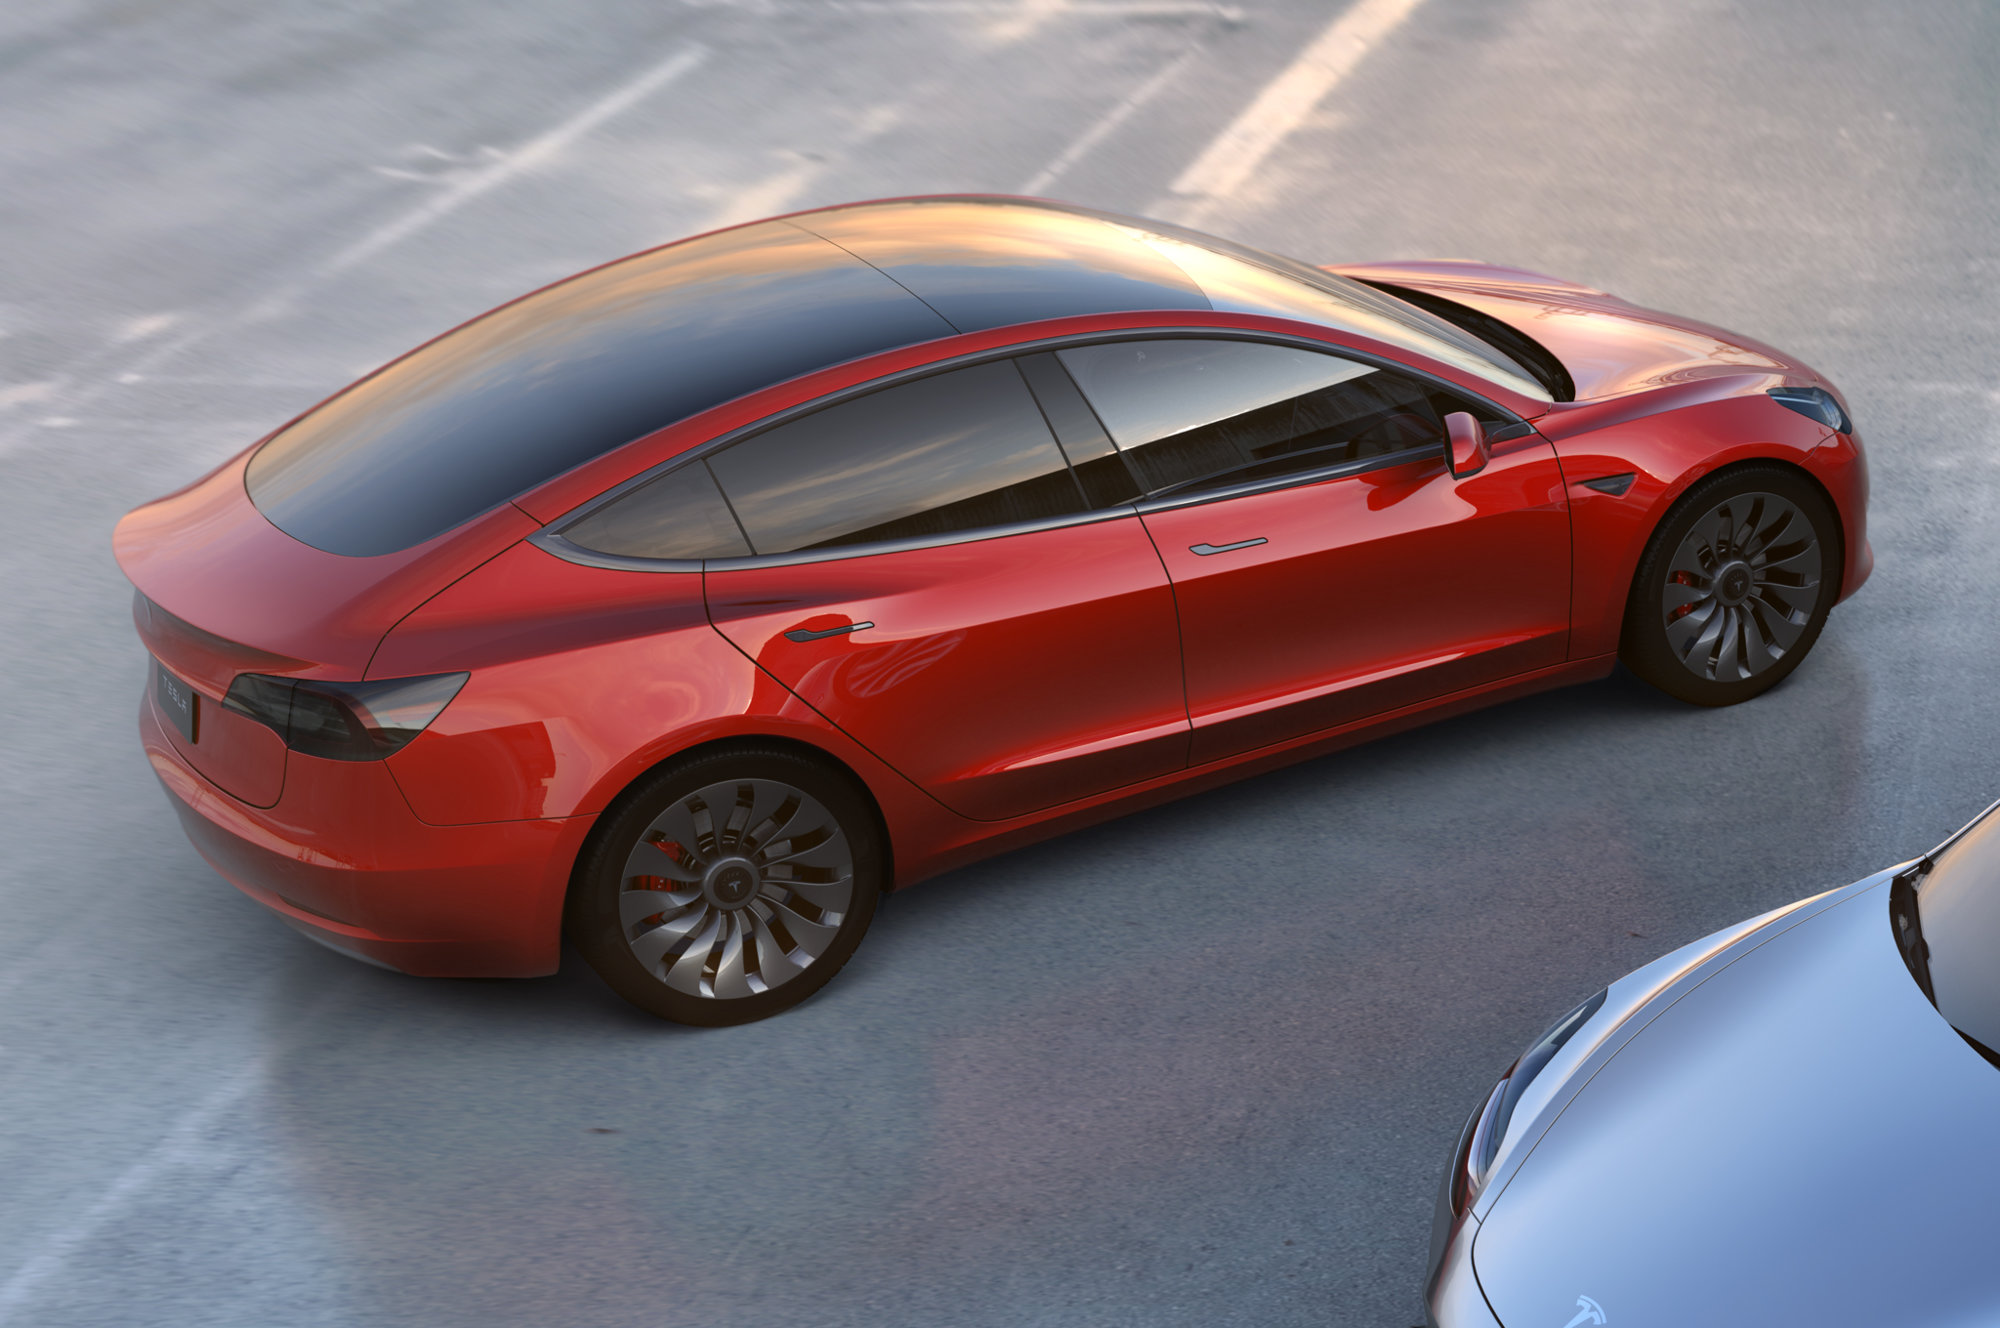 Tesla-Model-3-rear-side-view-from-above-in-red.jpg